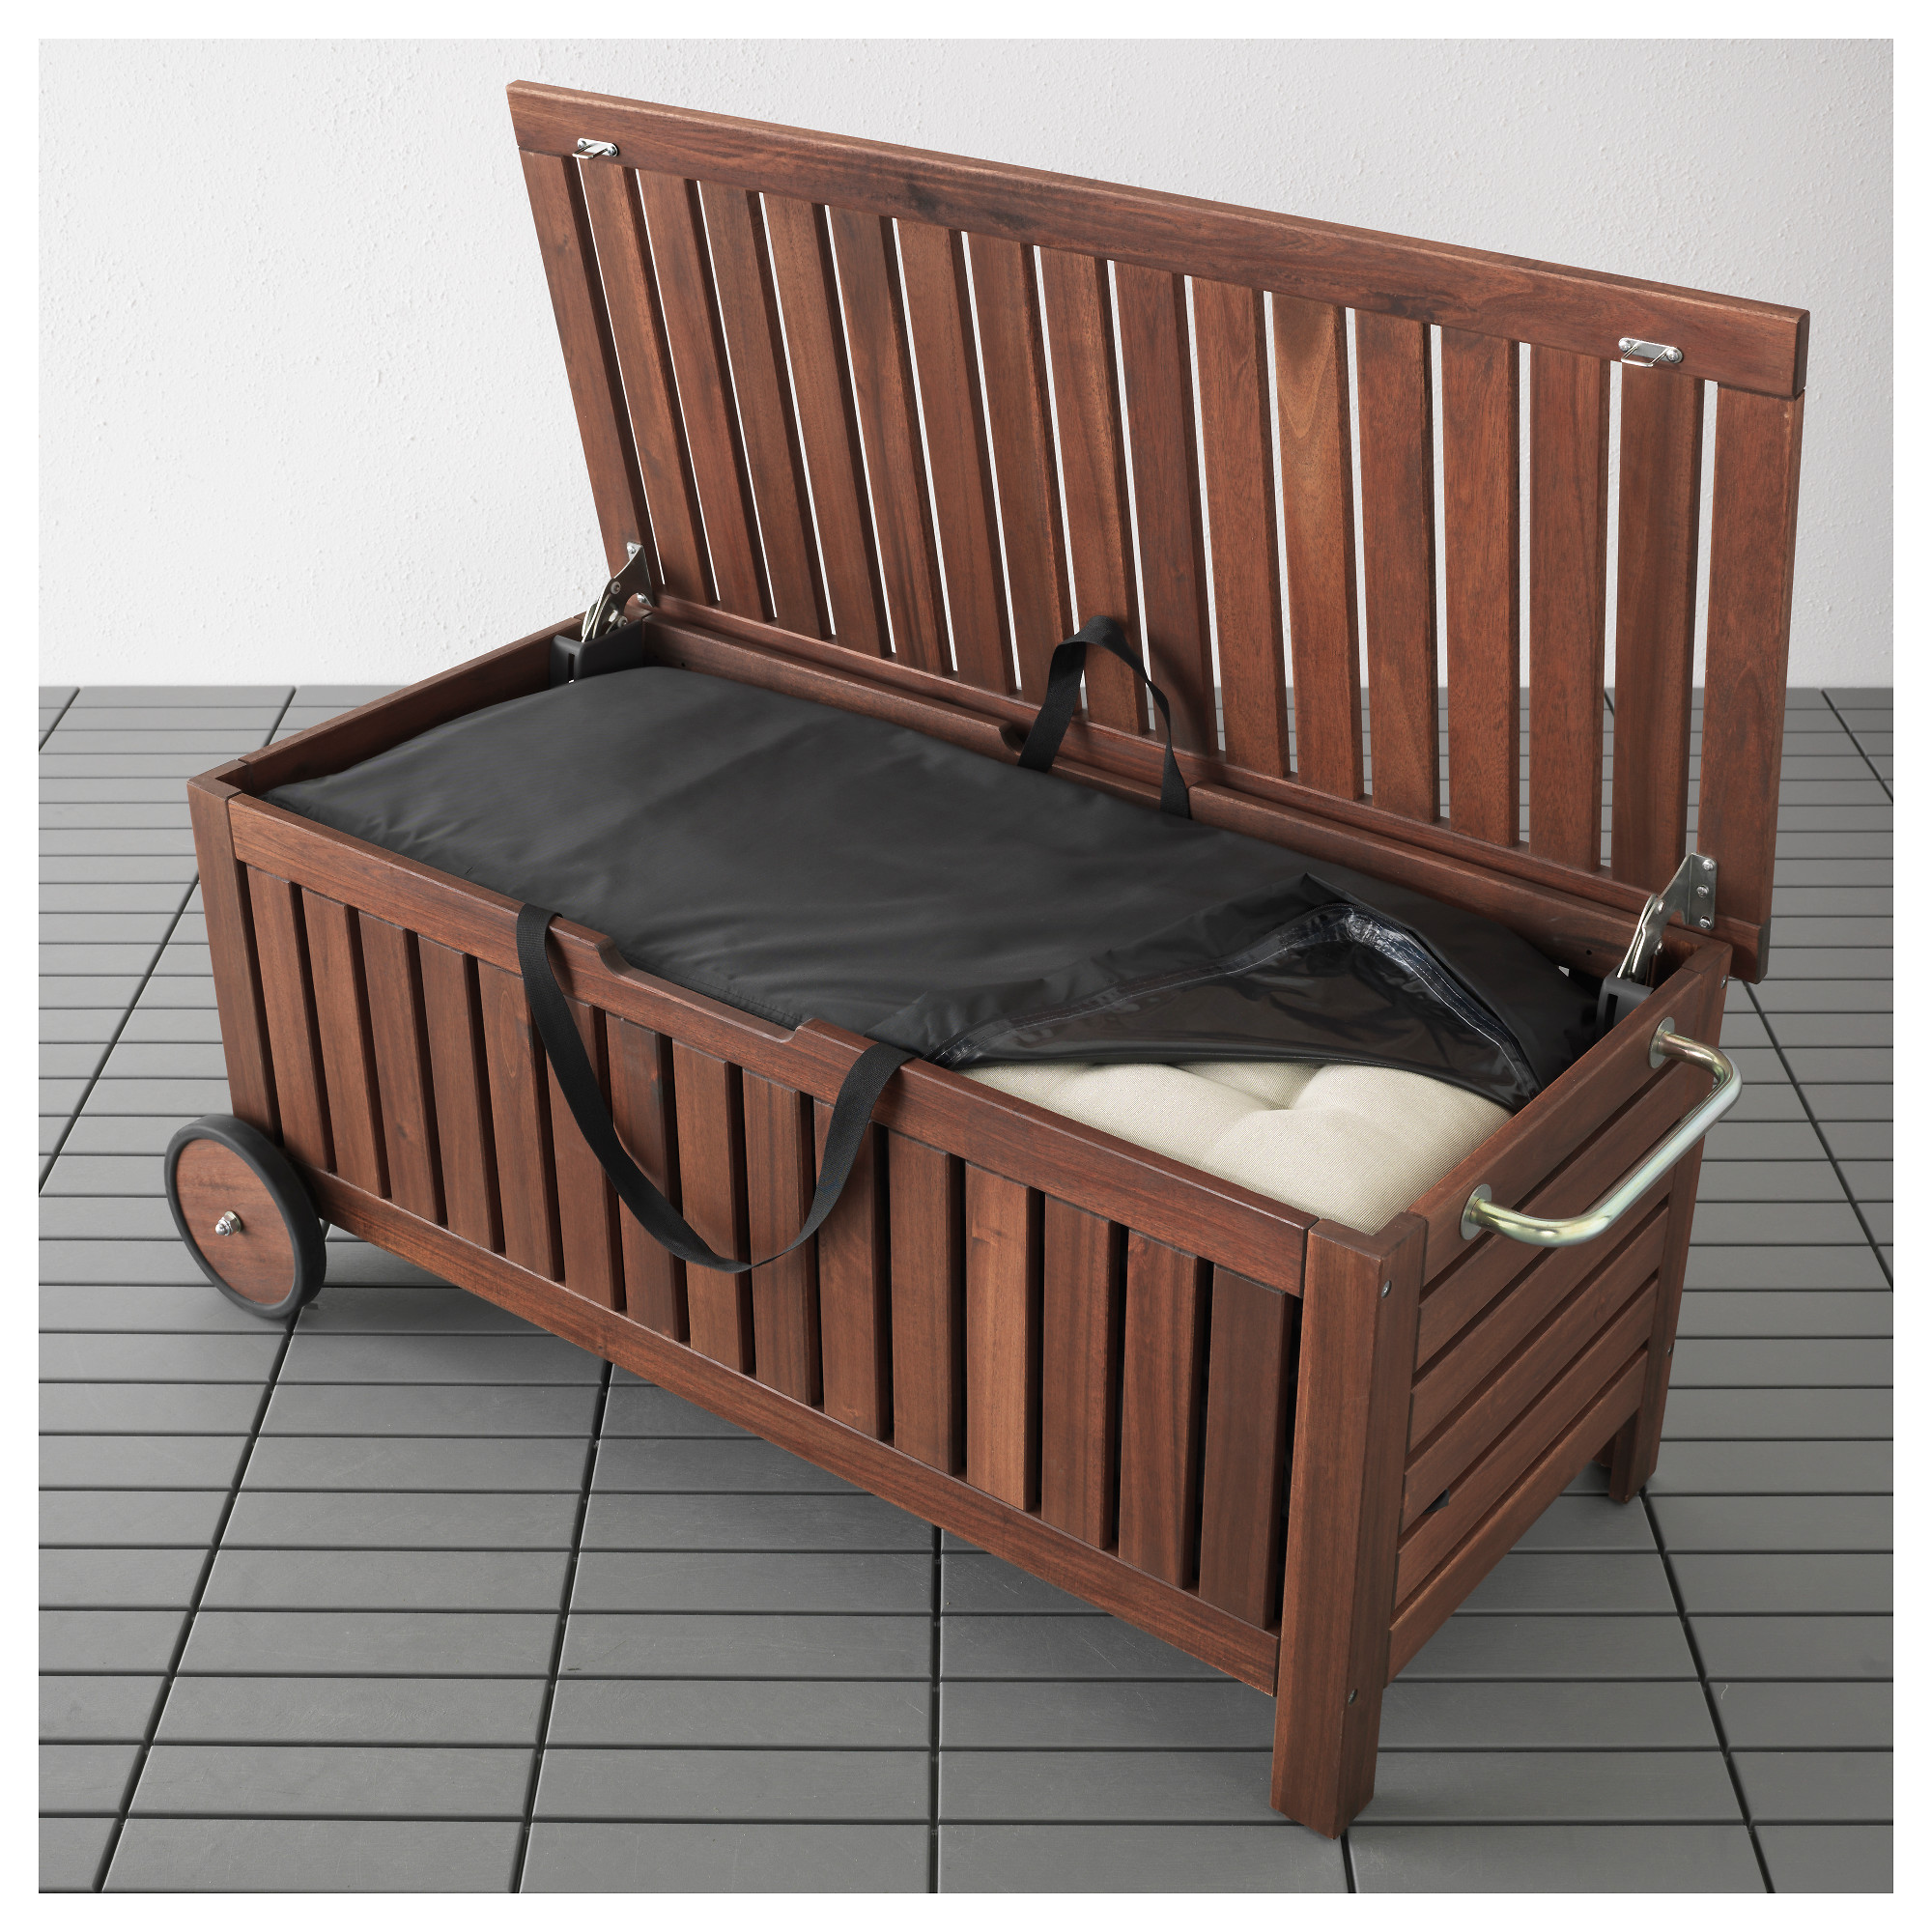 New Patio Furniture Cushion Storage